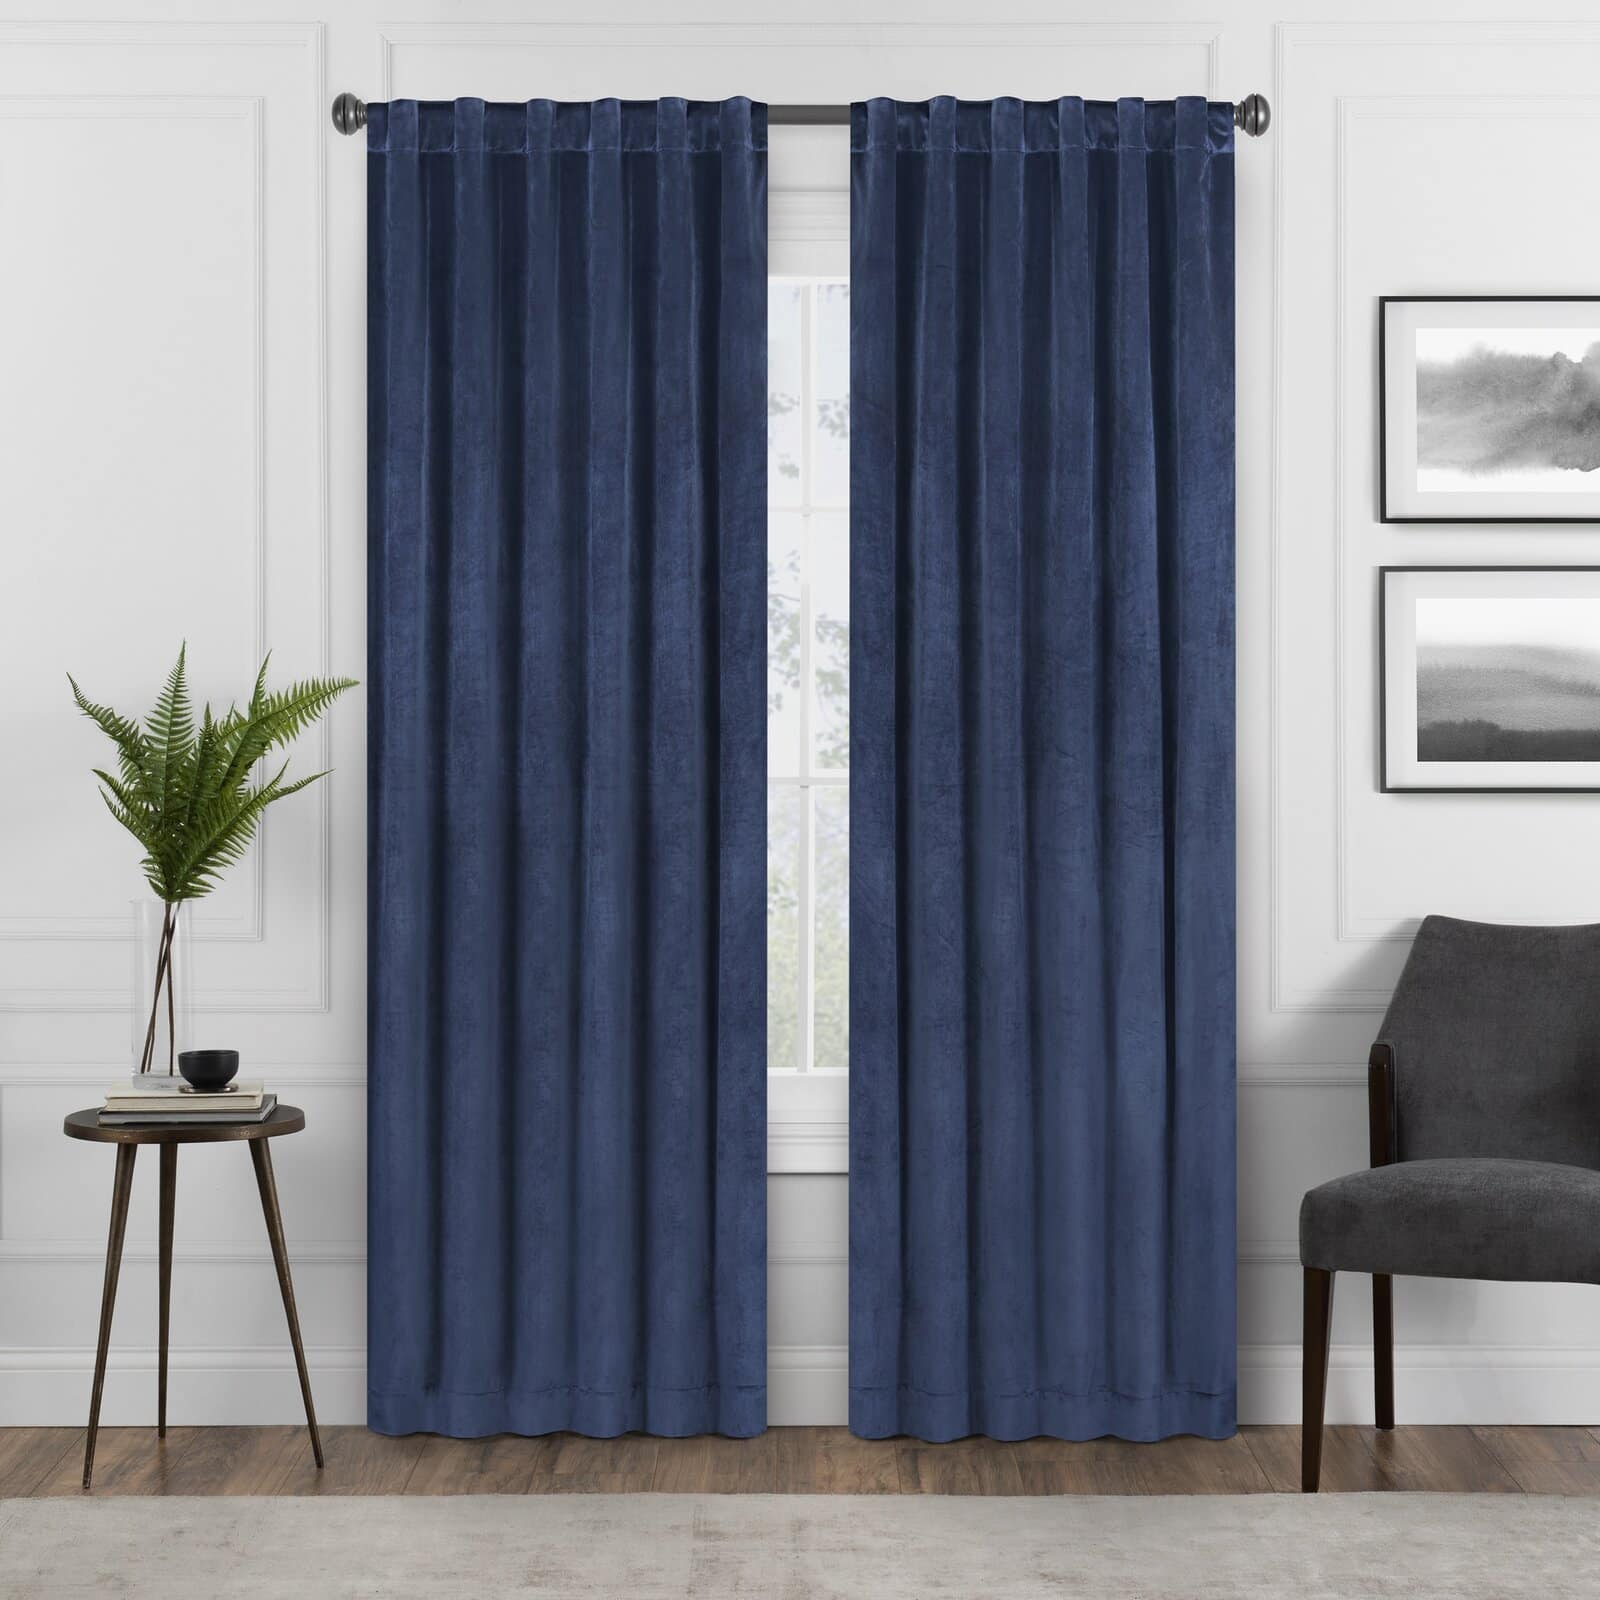 Navy Blue Curtains With White Walls for a Smart Look